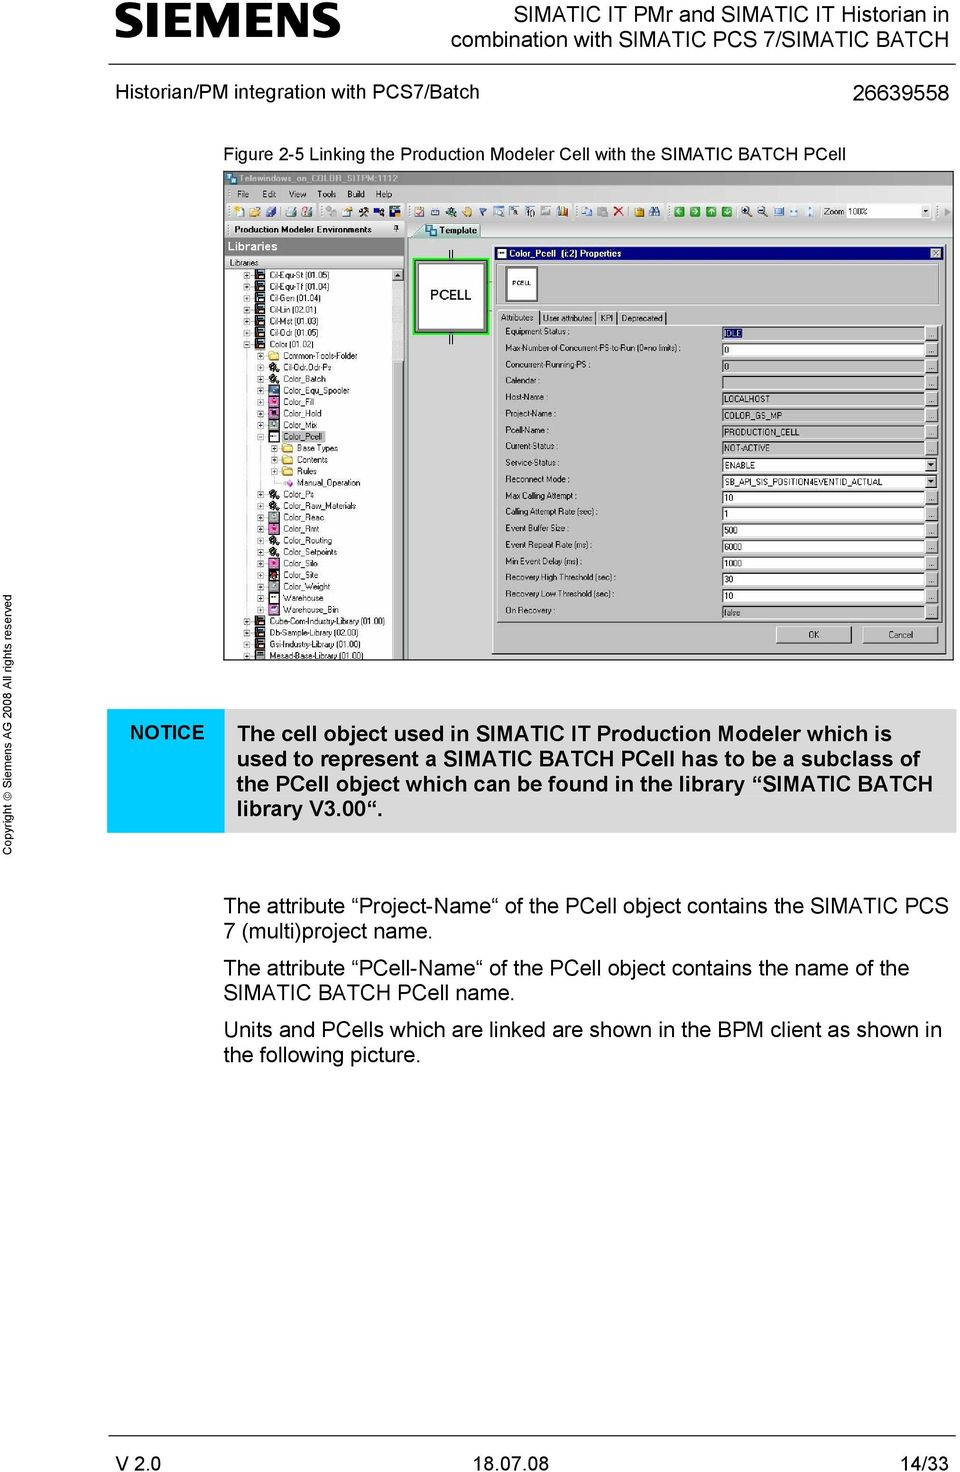 The attribute Project-Name of the PCell object contains the SIMATIC PCS 7 (multi)project name.